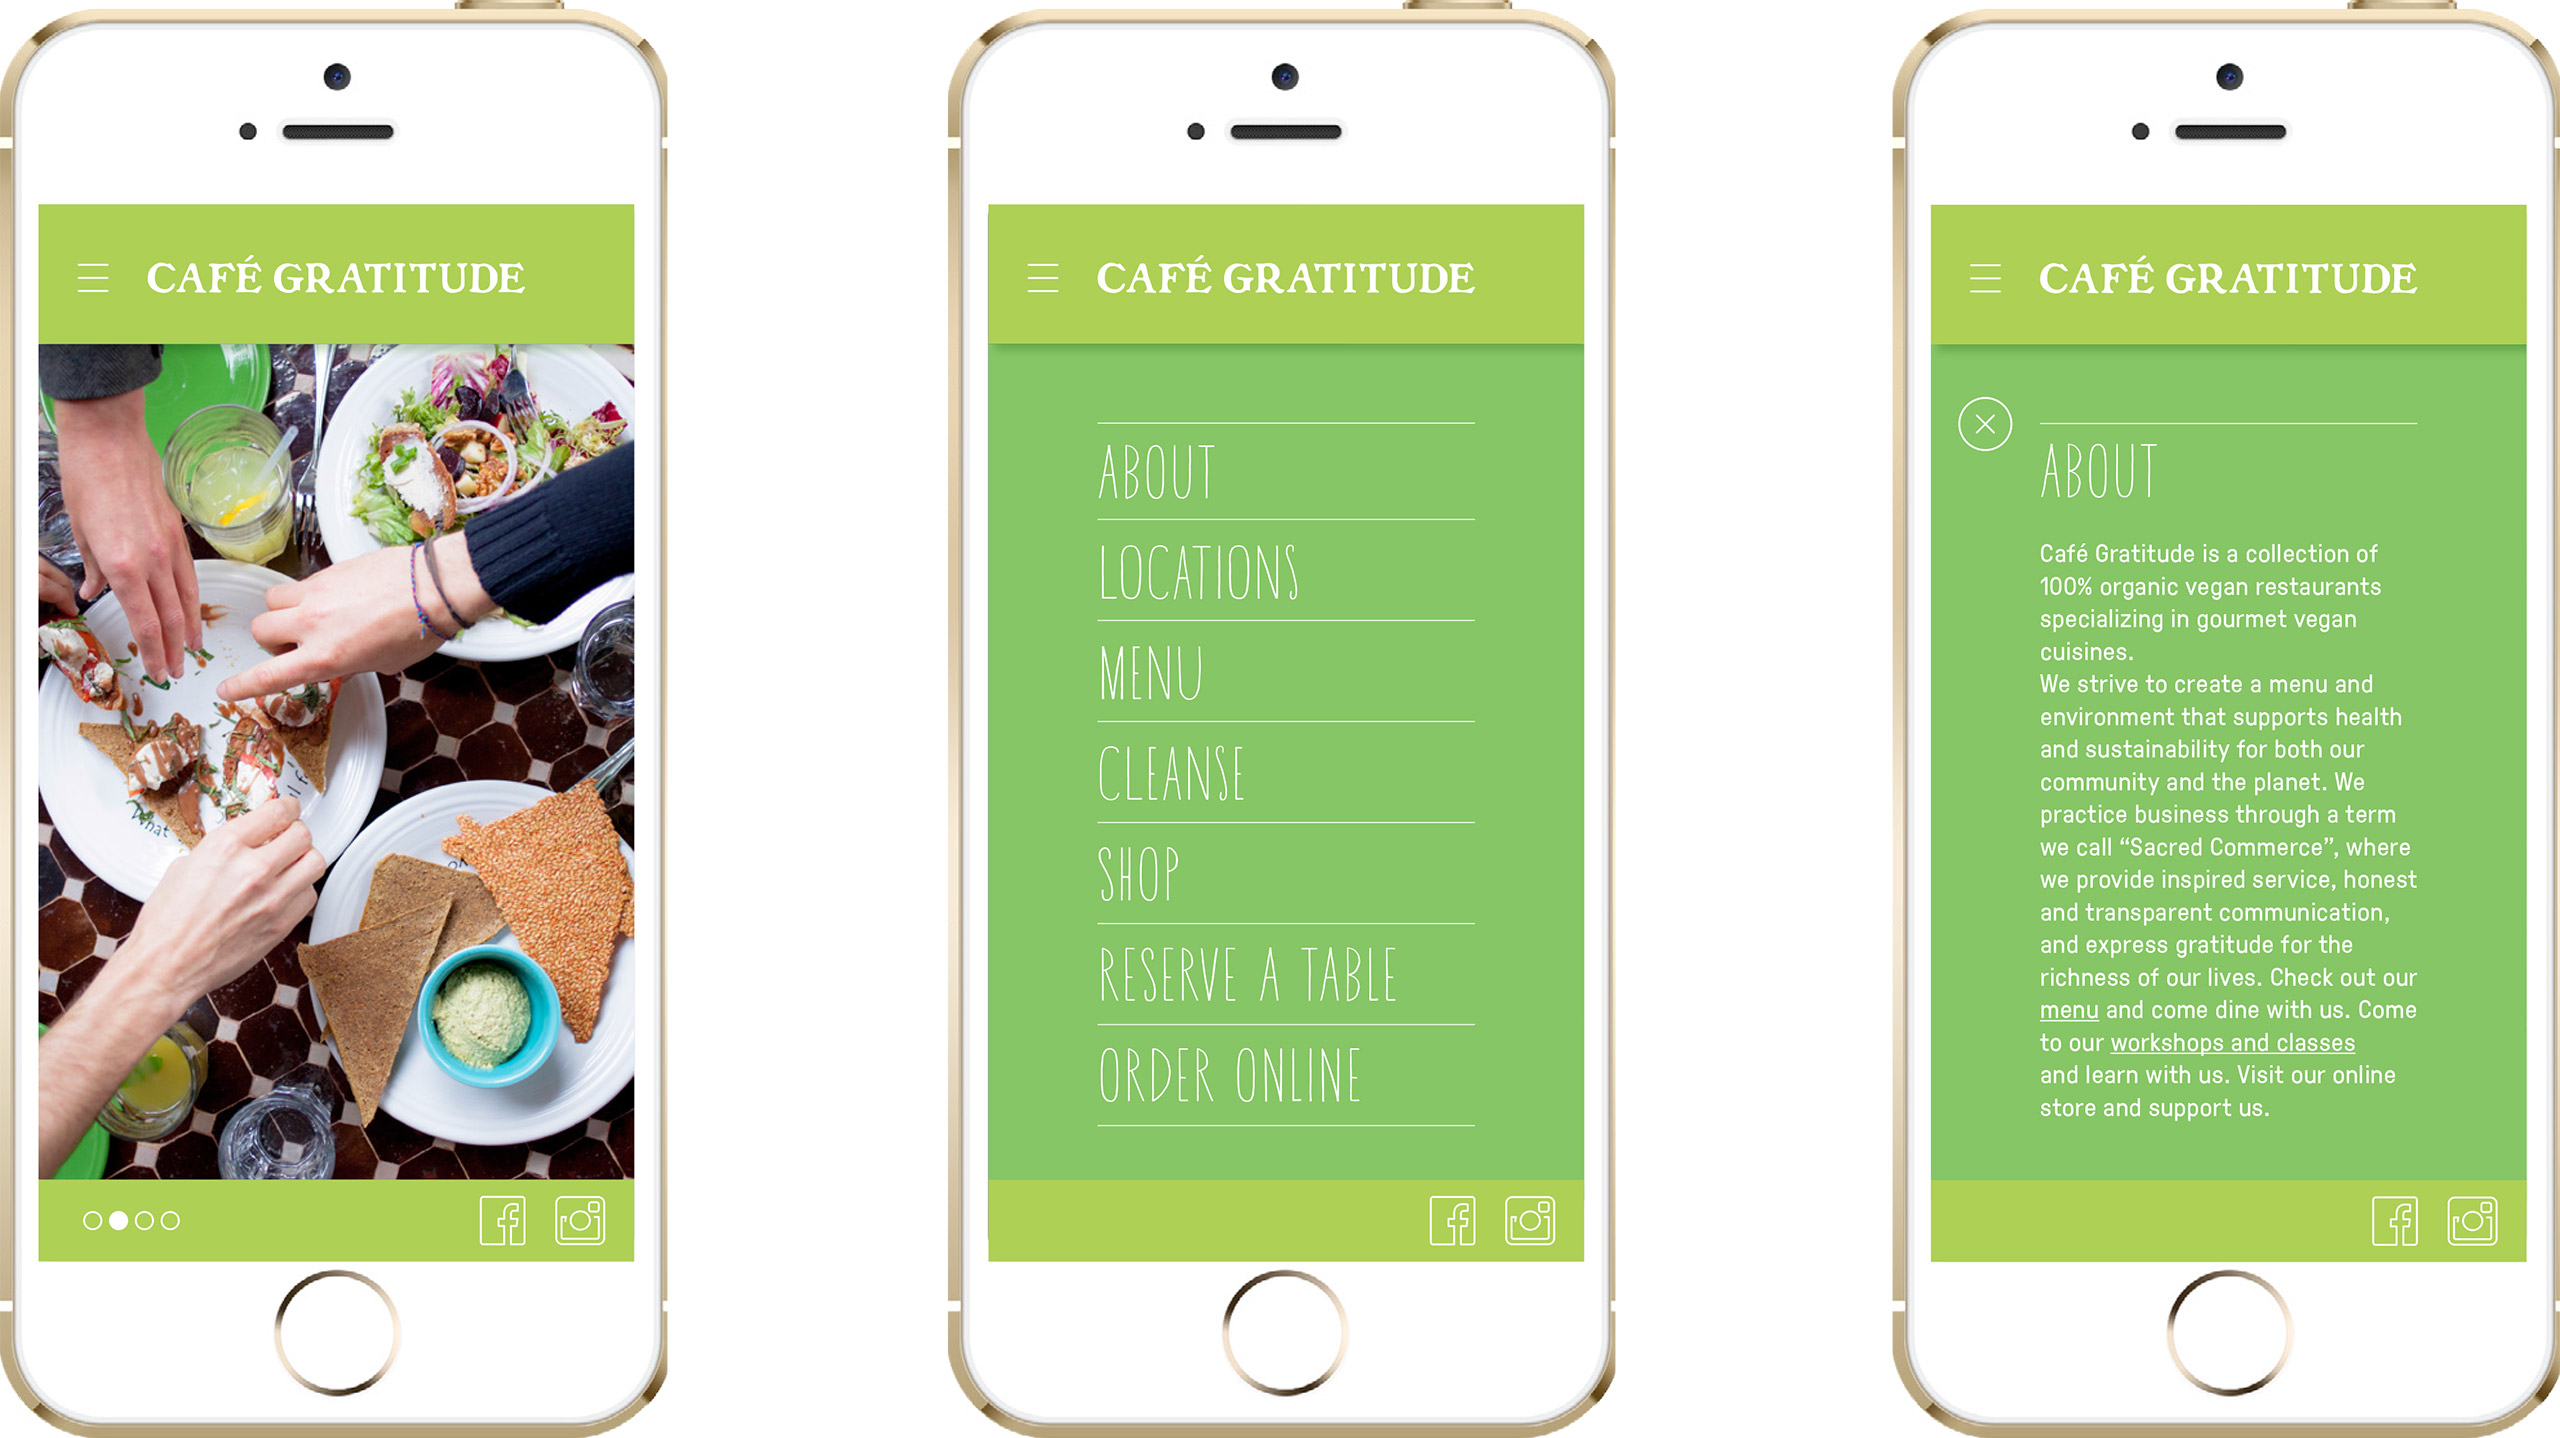 Cafe Gratitude mobile design